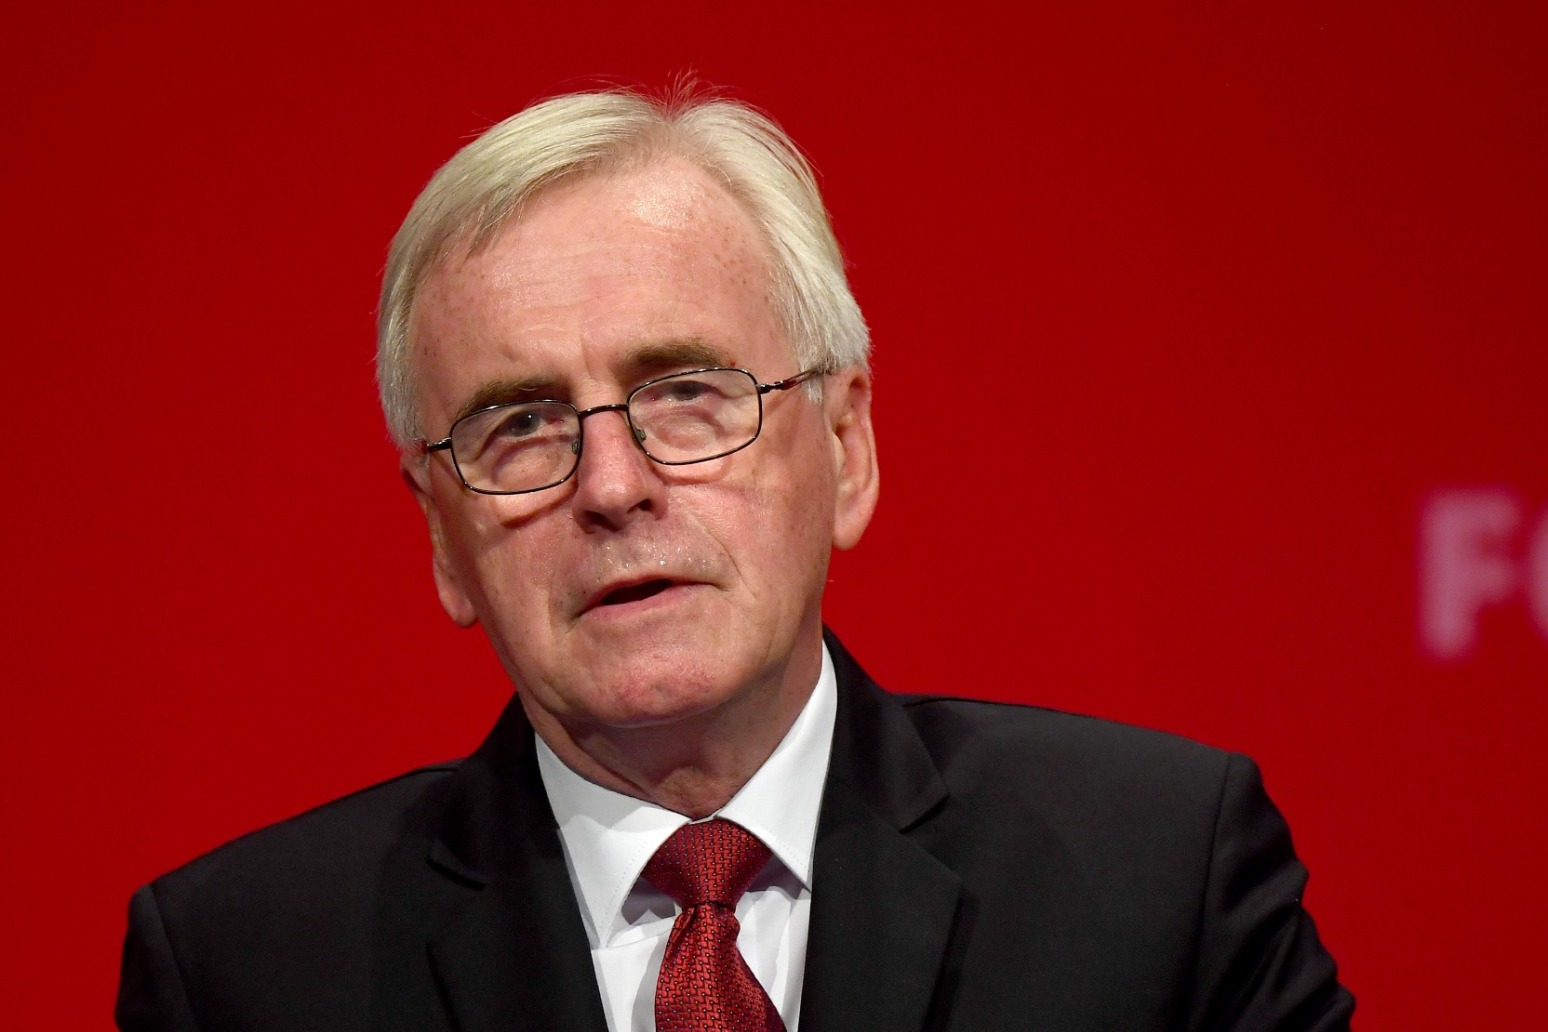 JOHN MCDONNELL TO QUIT FRONTLINE POLITICS FOLLOWING LABOUR DEFEAT